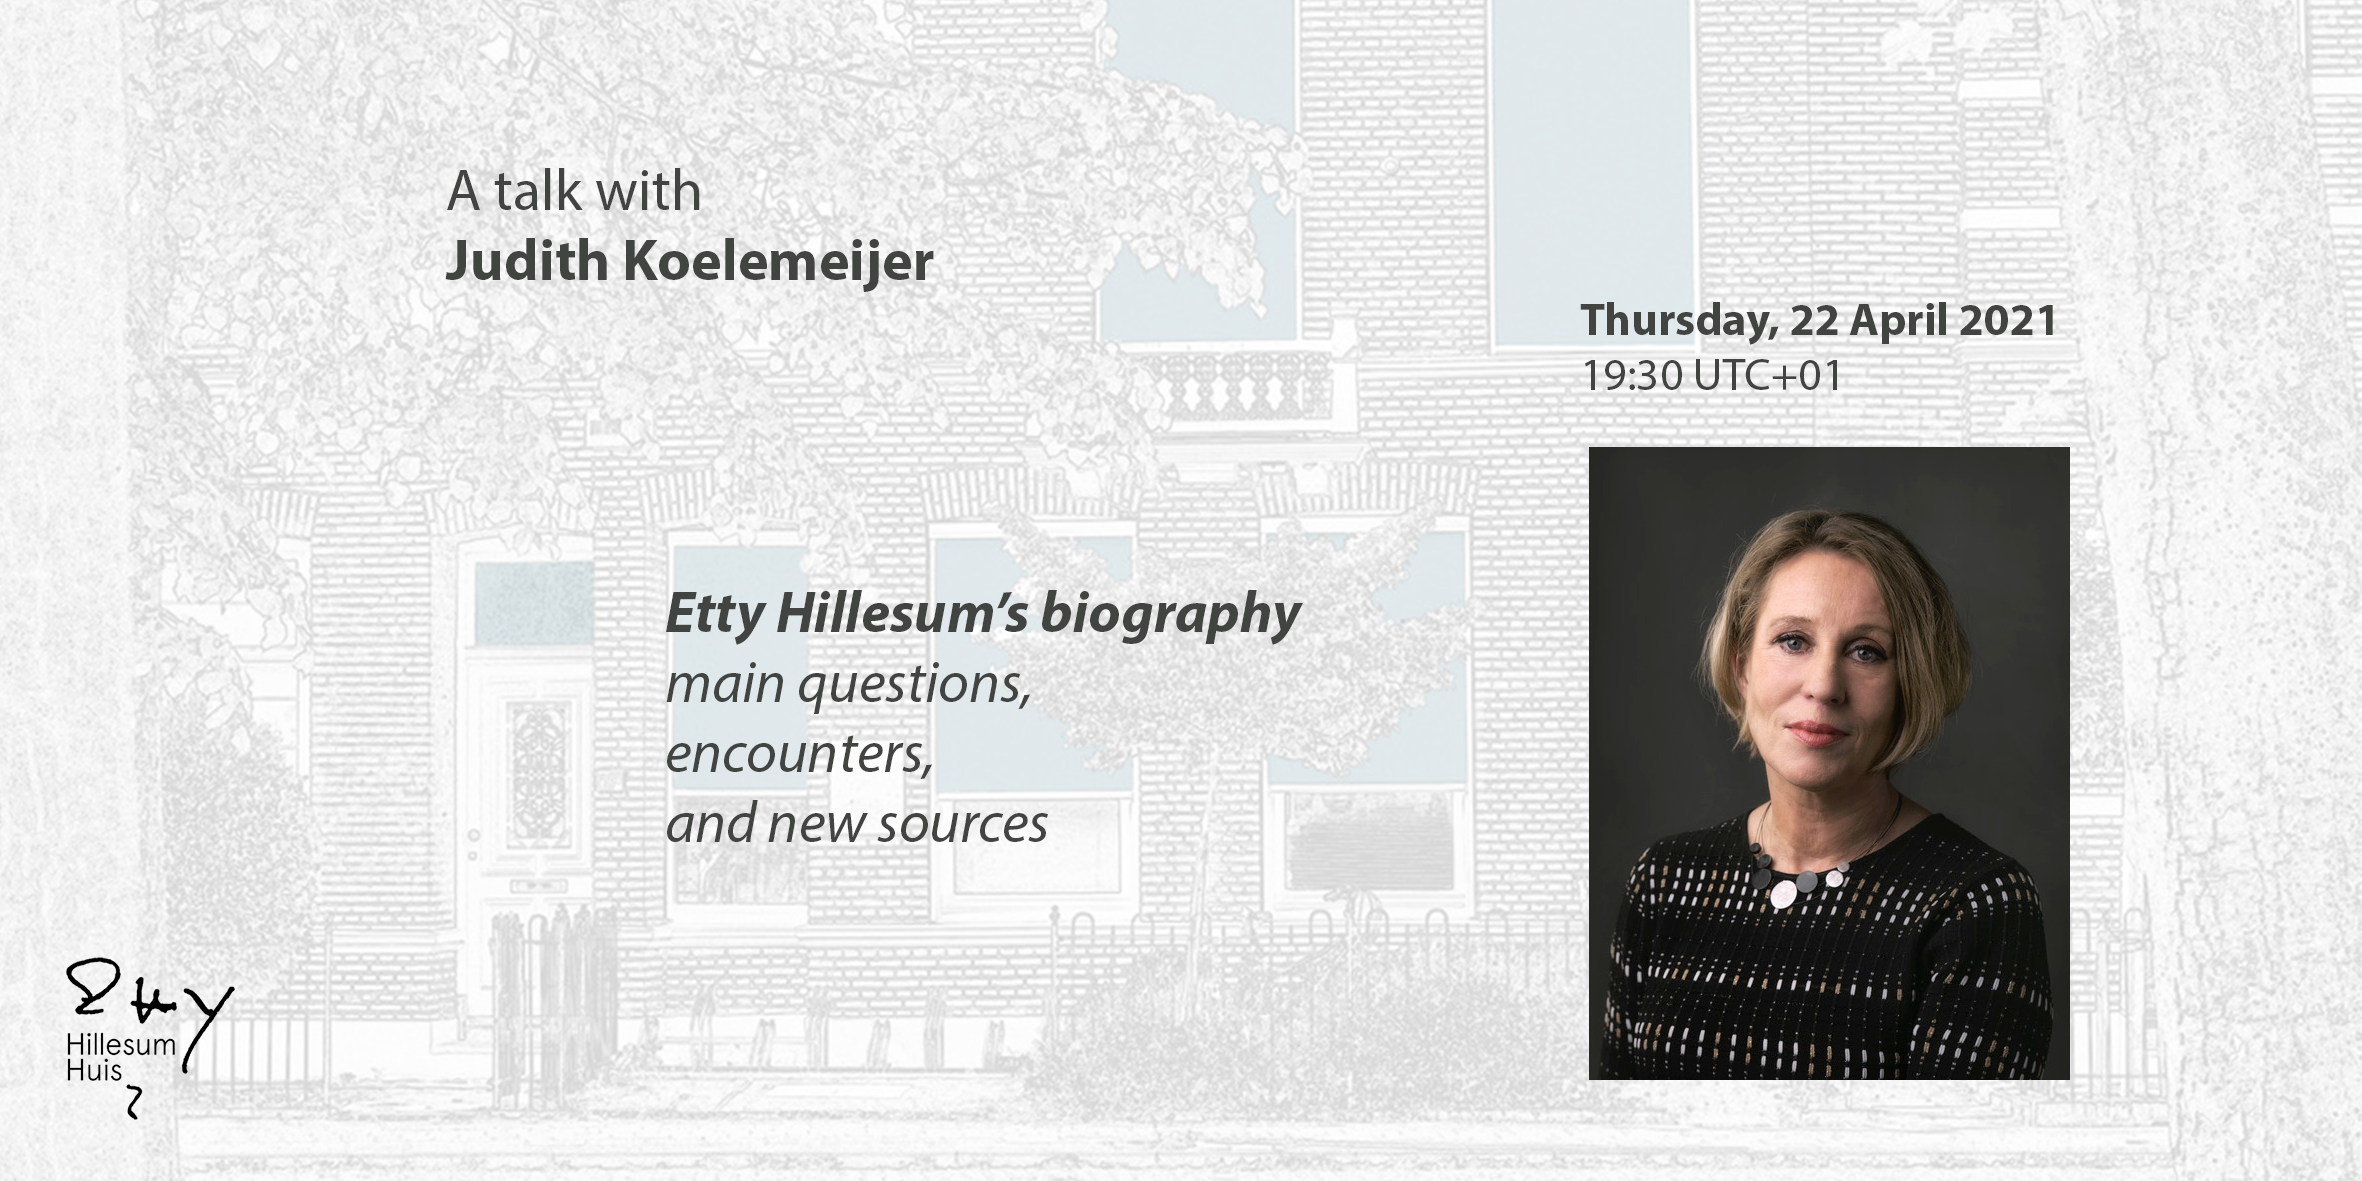 A talk with Judith Koelemijer